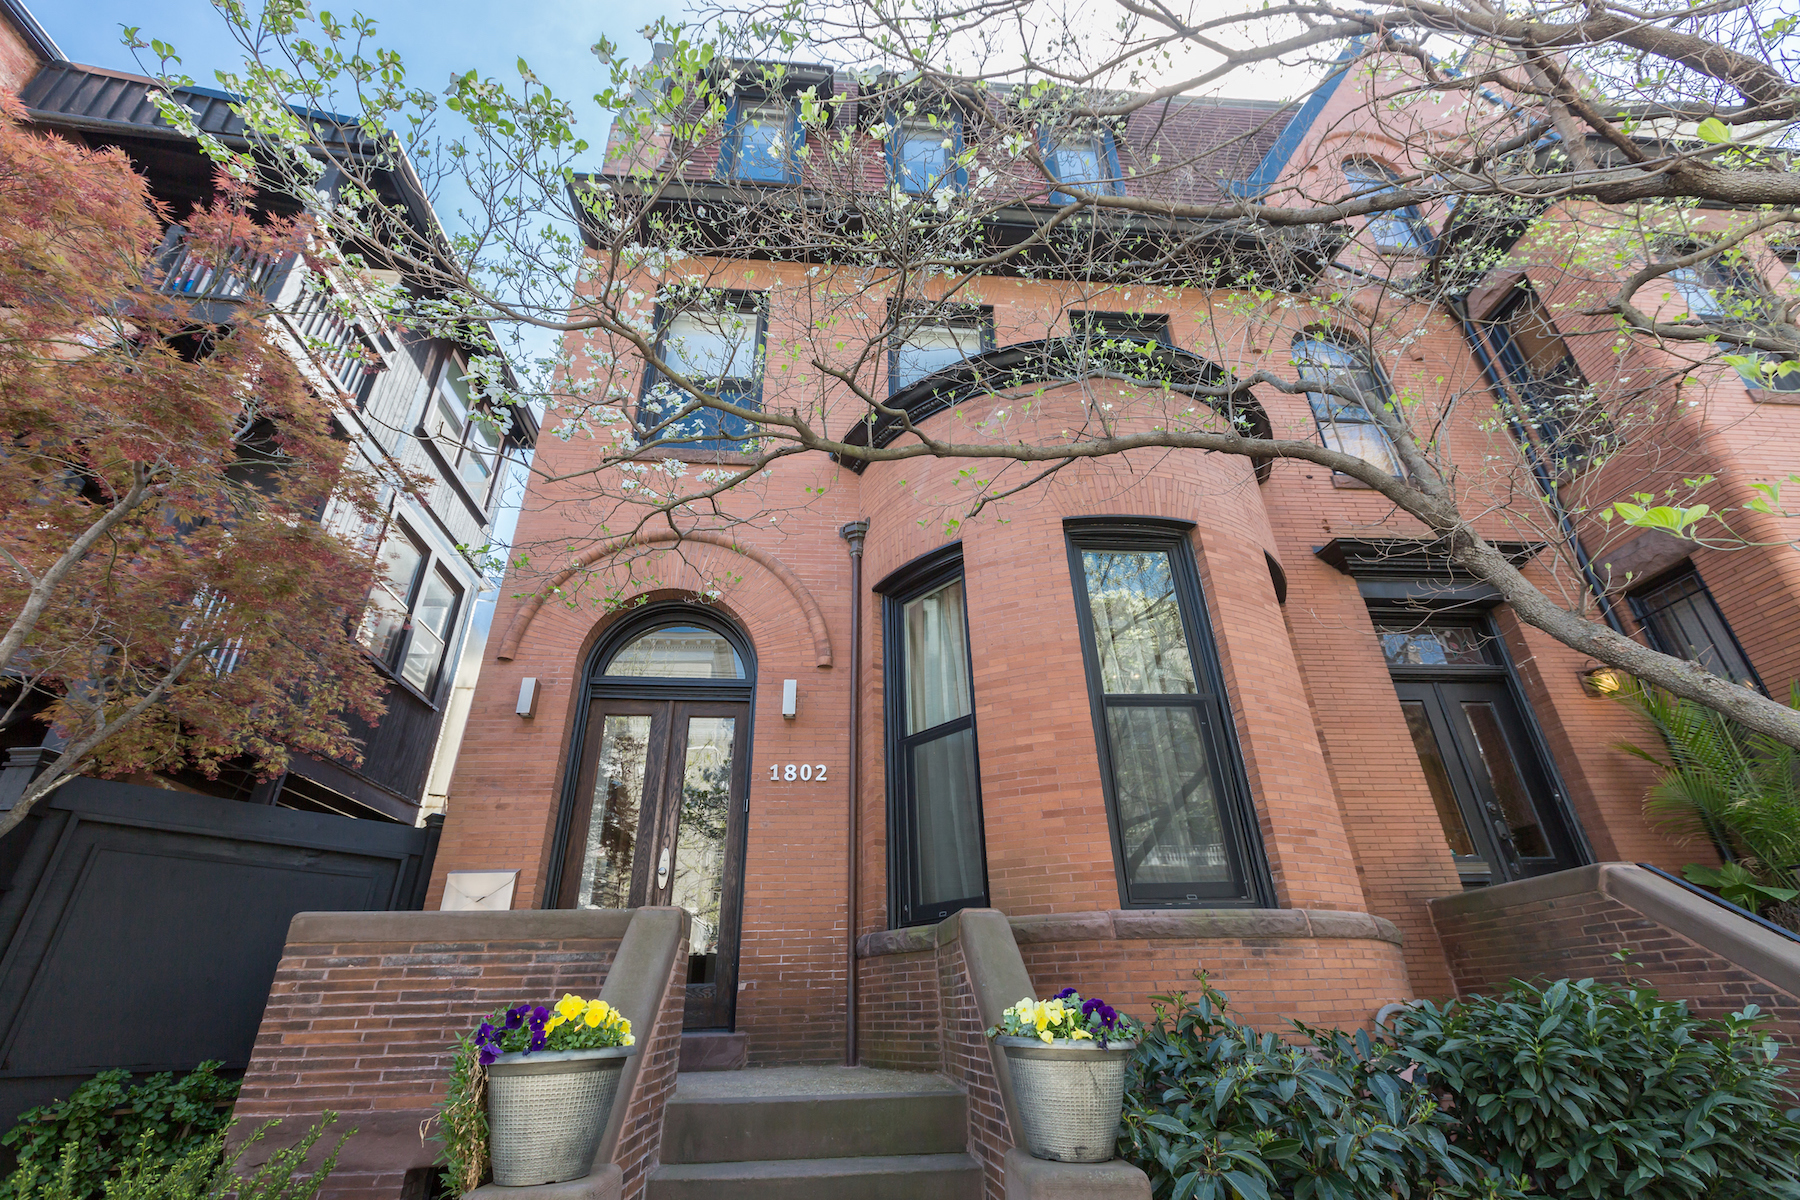 Townhouse for Sale at Adams Morgan 1802 Wyoming Avenue Nw Washington, District Of Columbia, 20009 United States